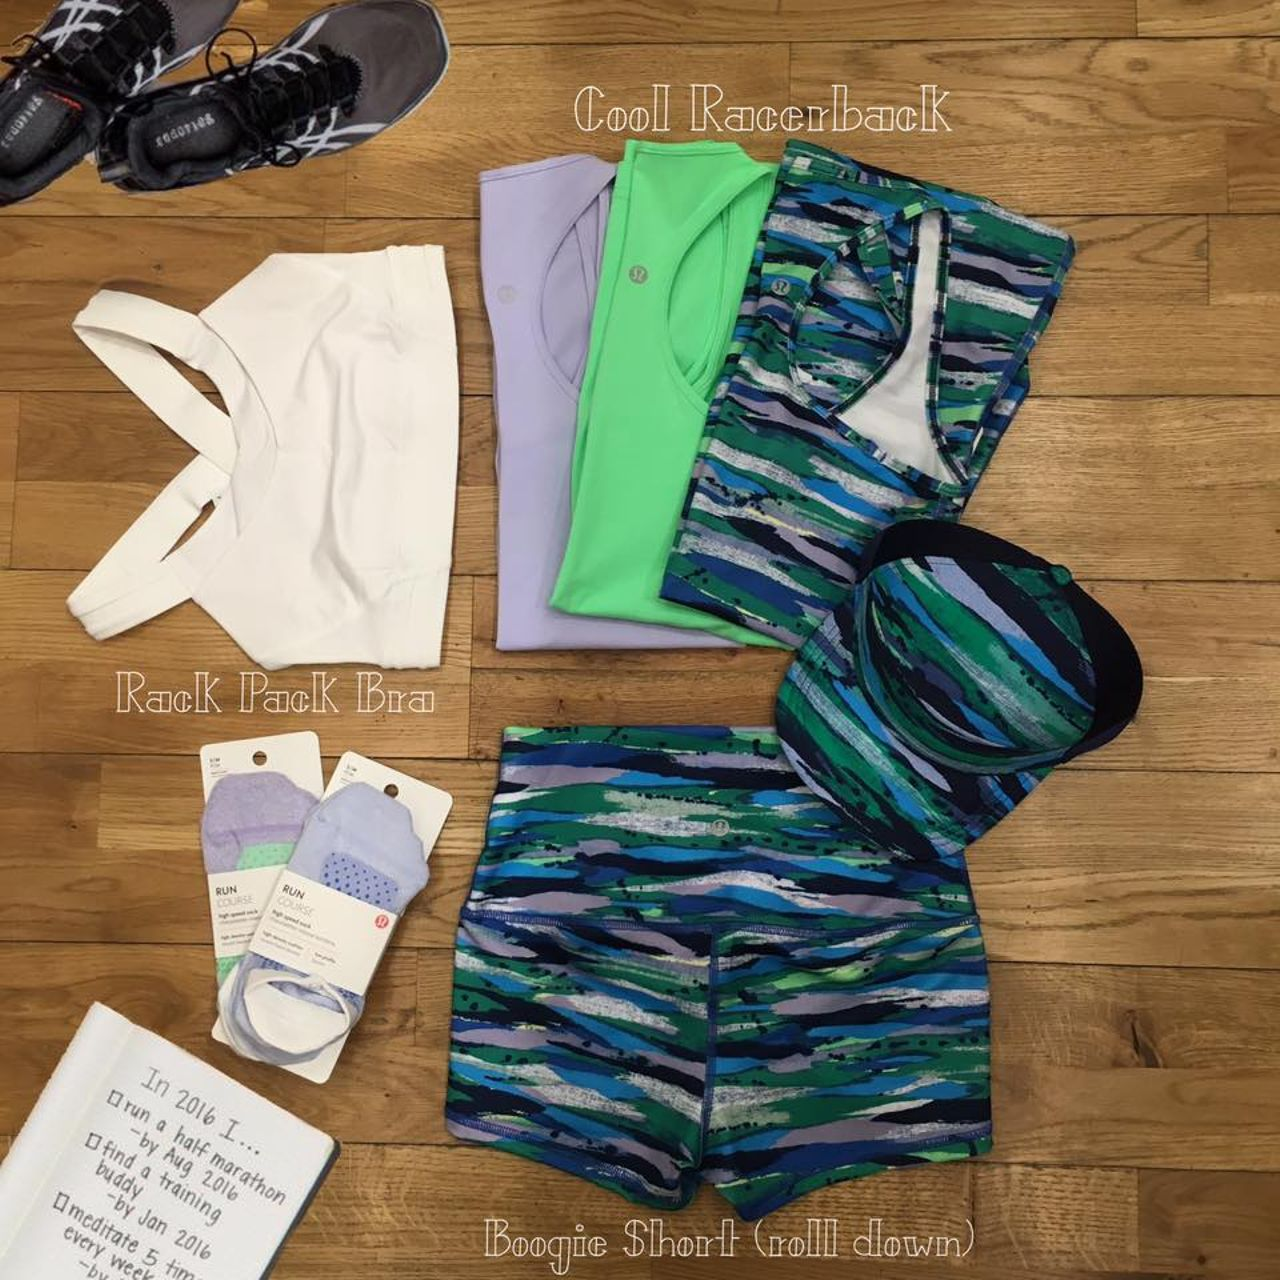 Lululemon Boogie Short (Roll Down) *Full-On Luon - Seven Wonders Multi